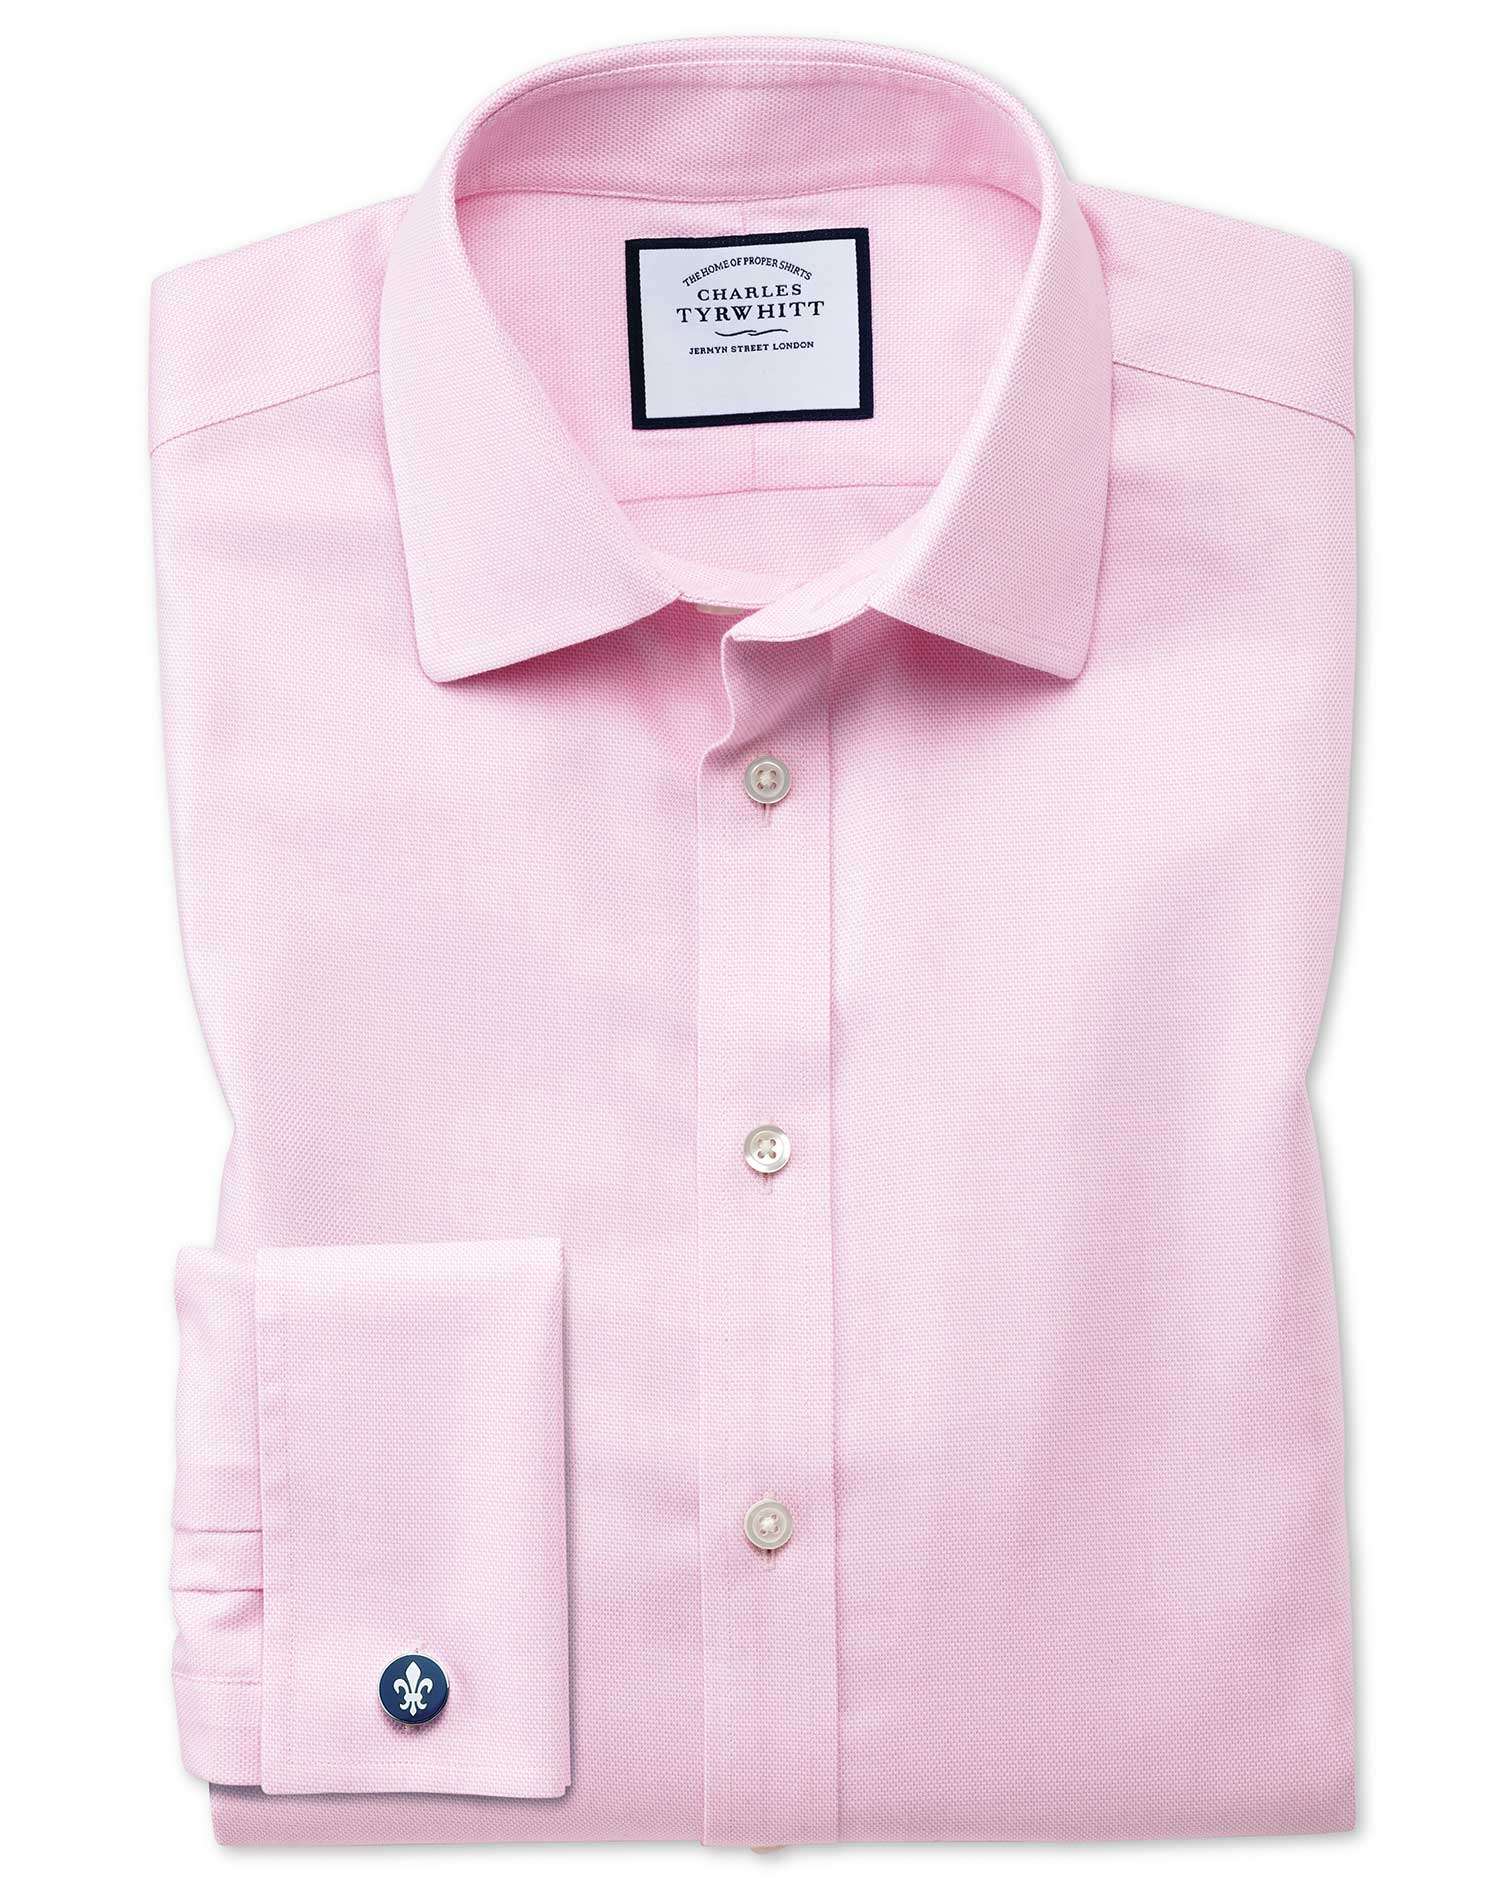 Extra Slim Fit Non-Iron Step Weave Pink Cotton Formal Shirt Double Cuff Size 15.5/35 by Charles Tyrw